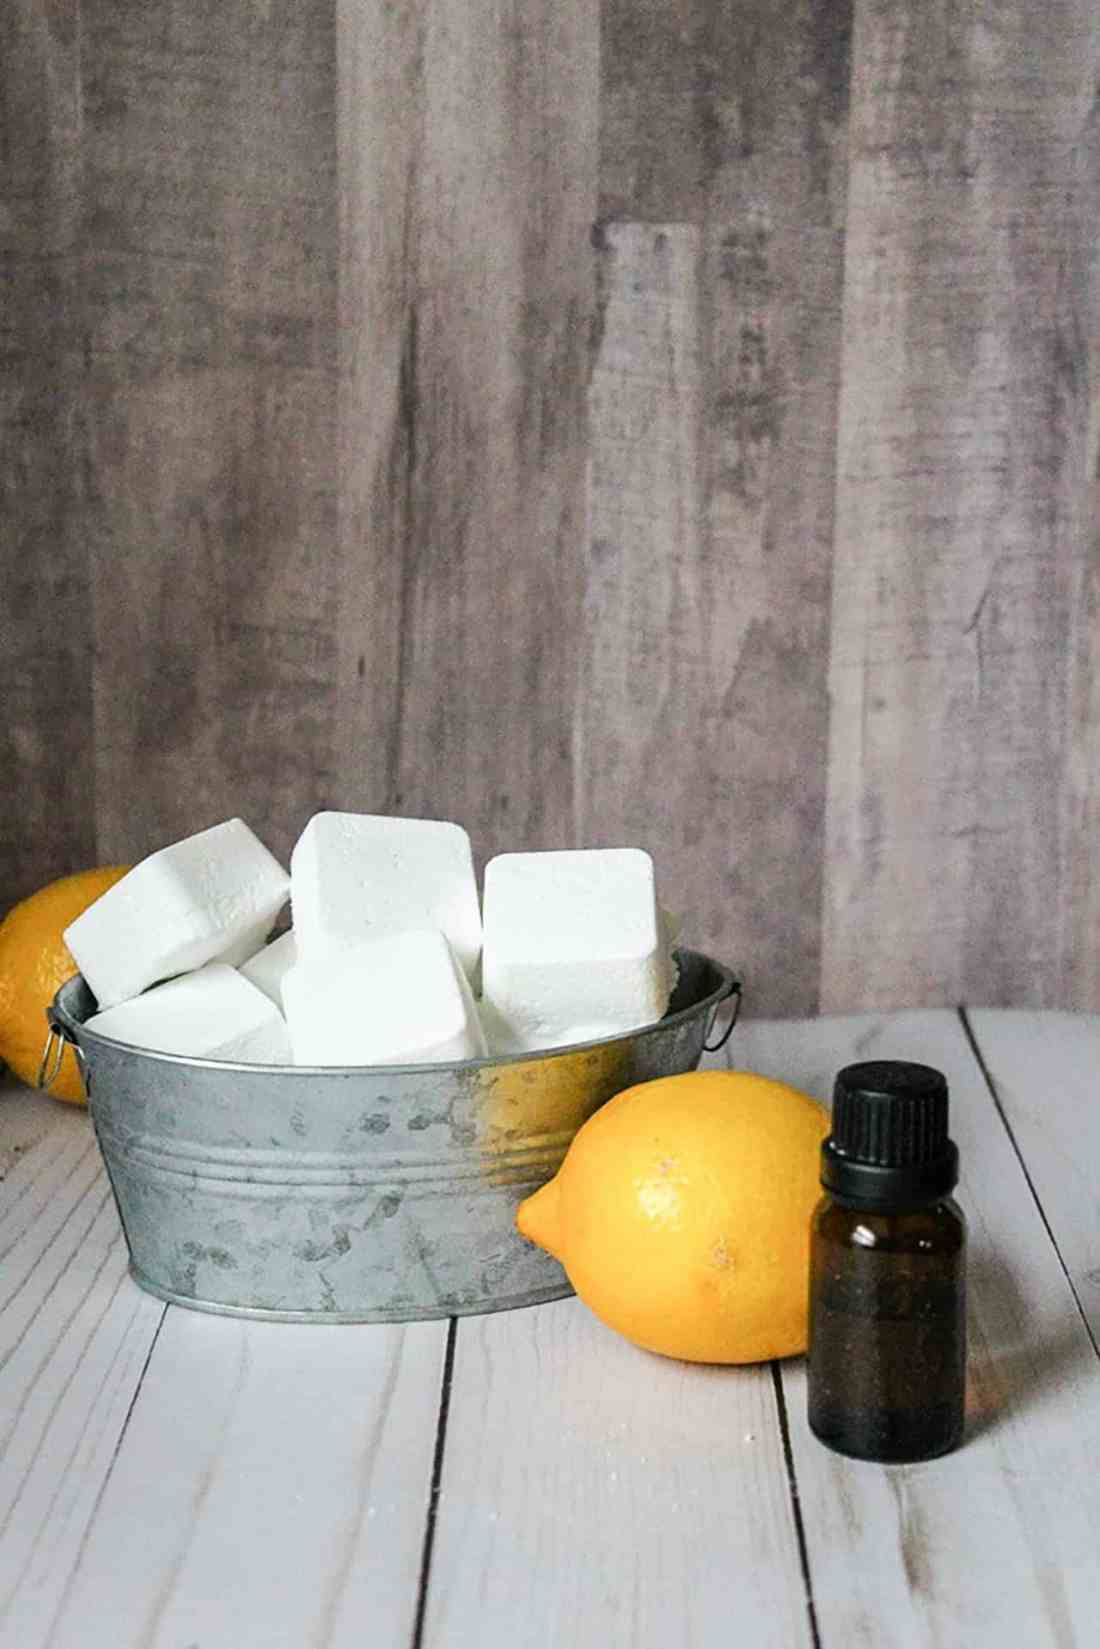 Want a super easy way to keep your toilet fresh between cleanings? Try our DIY toilet bombs made with essential oils and baking soda for a fresh clean scent!